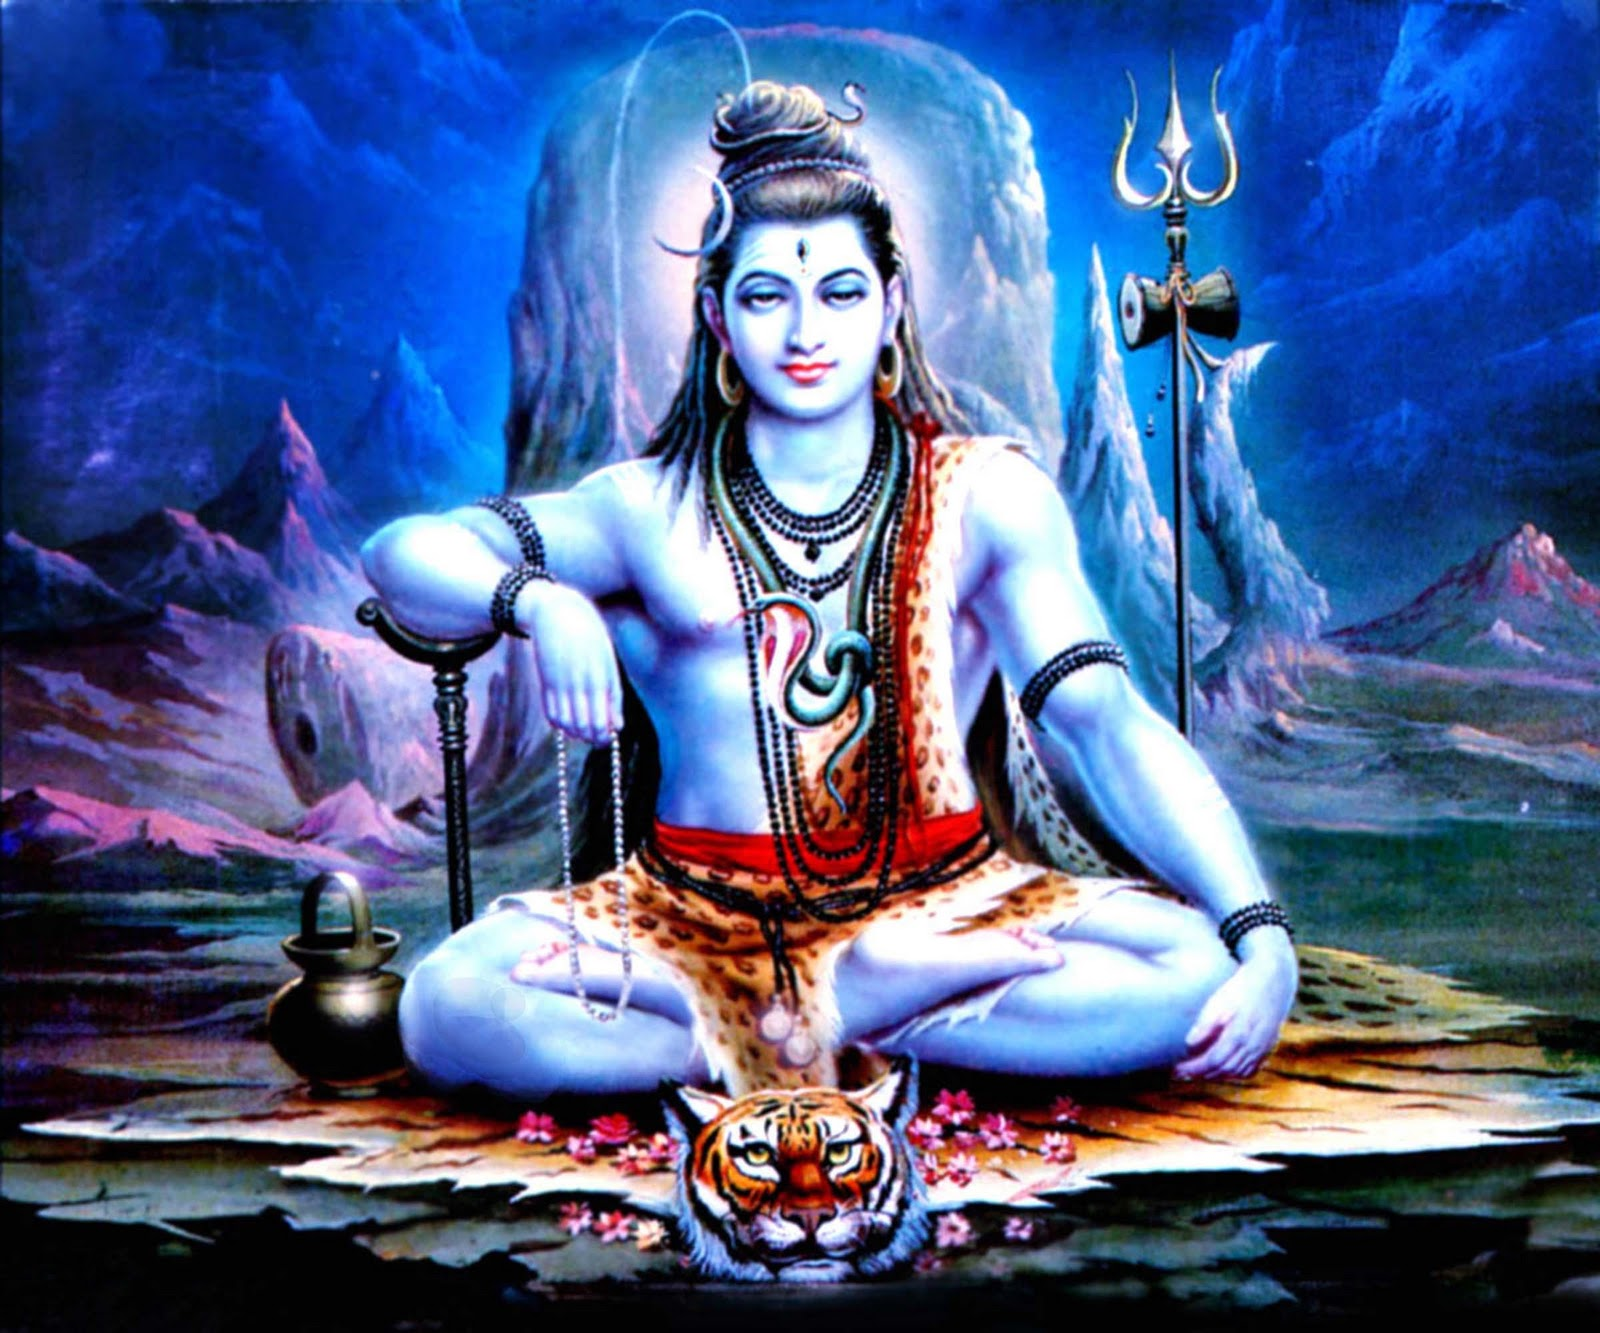 Cool Wallpaper Lord Shankar - Lord_Shiva_Wallpapers+%25286%2529  Graphic_77688.jpg